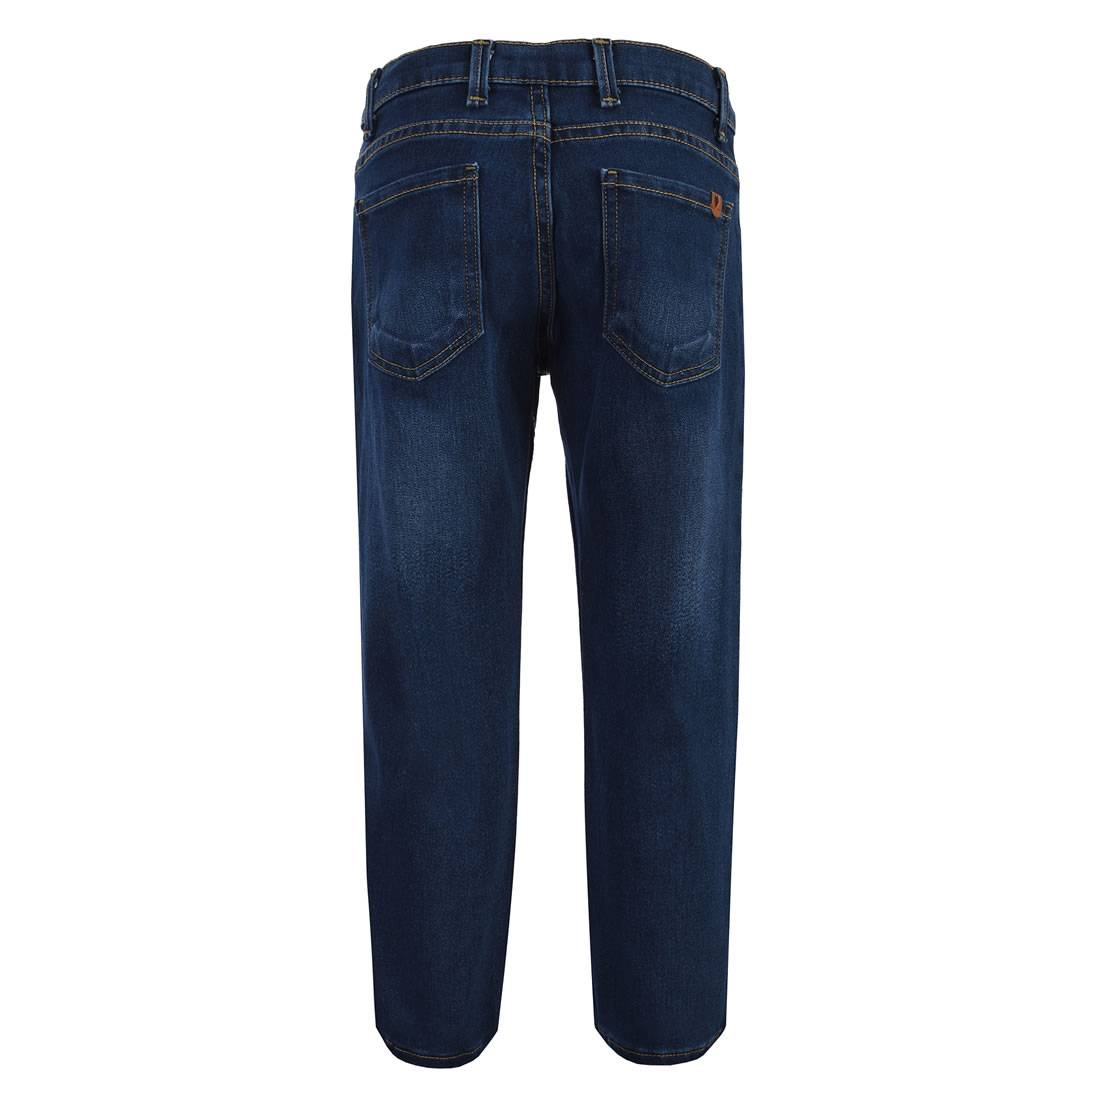 021403206918-02-Jeans-Boys-Boot-Cut-Hand-Sand-Whiskers-Con-Elastano-Cintura-Ajustable-Stone-Wash-yale